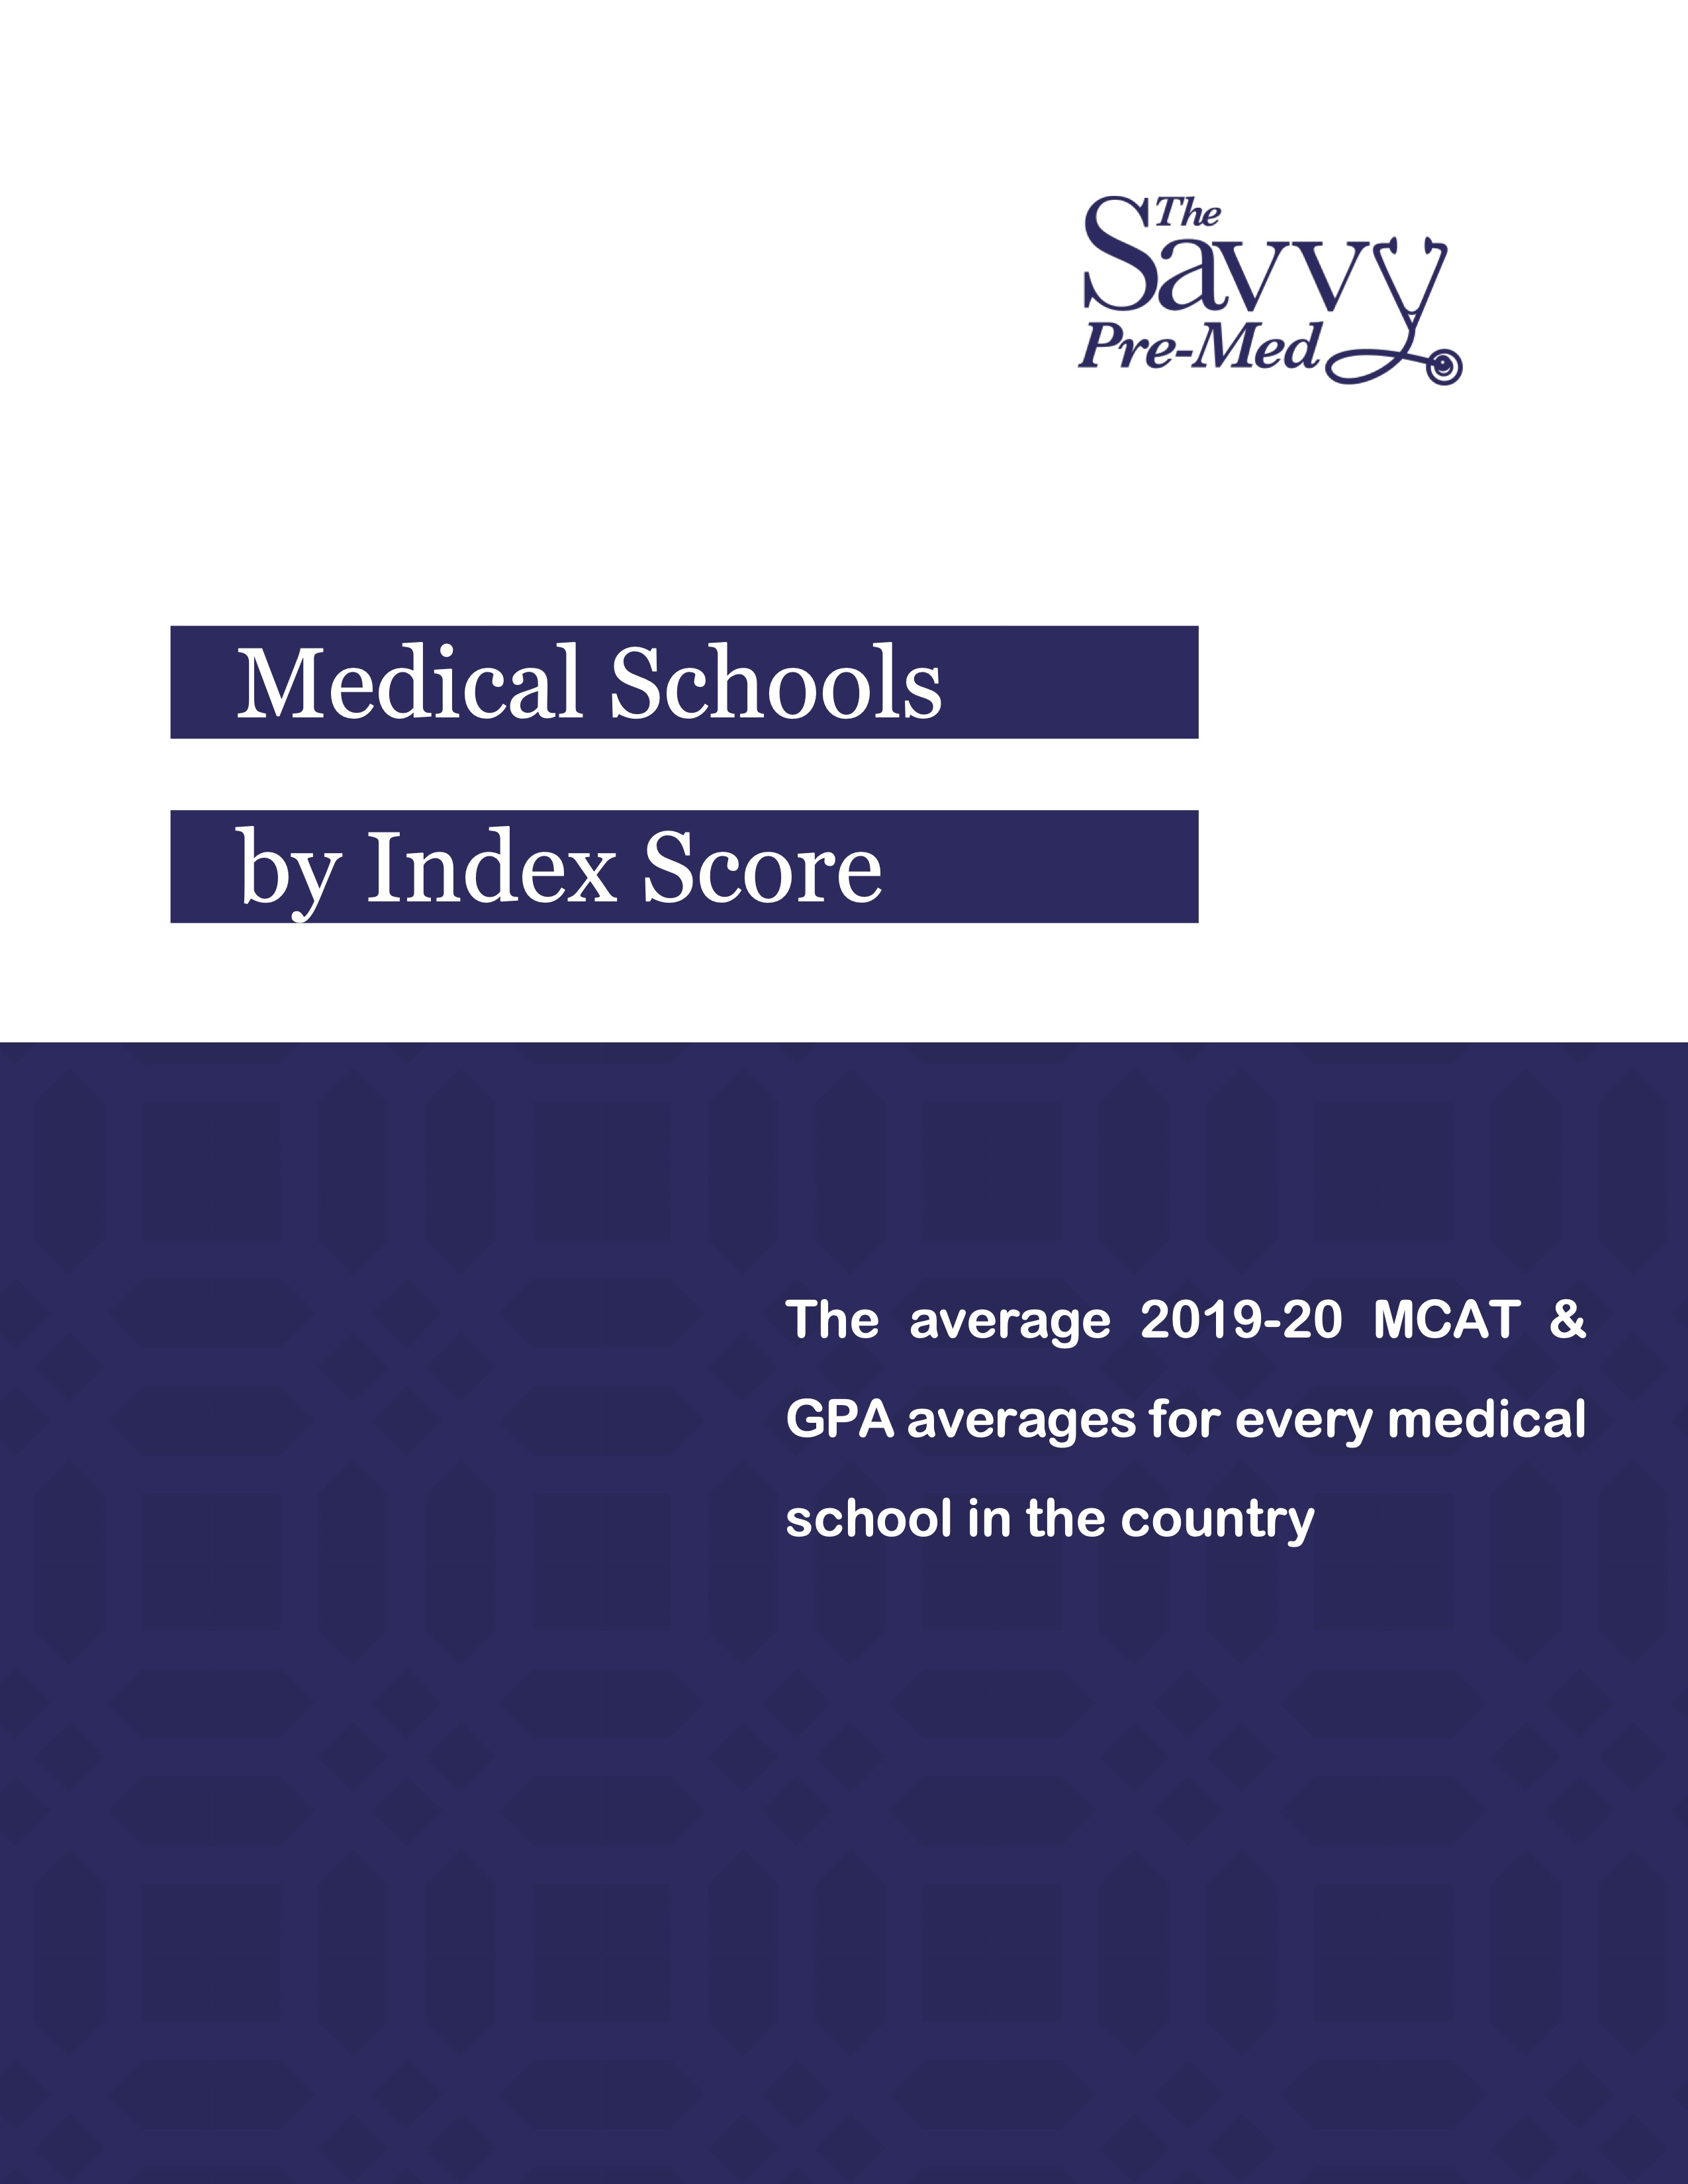 2019-2020 Medical Schools by Index Score